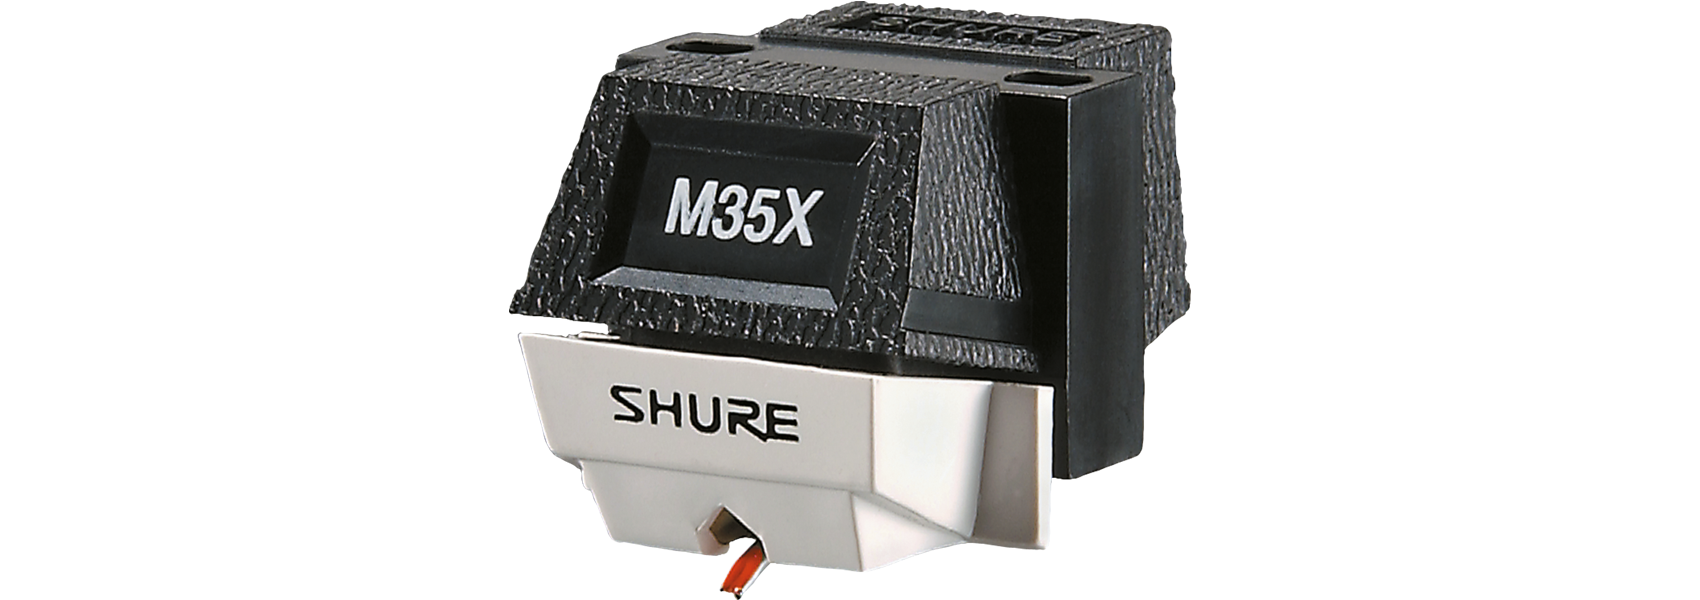 Illustration Shure M35X DJ Phono Cartridge